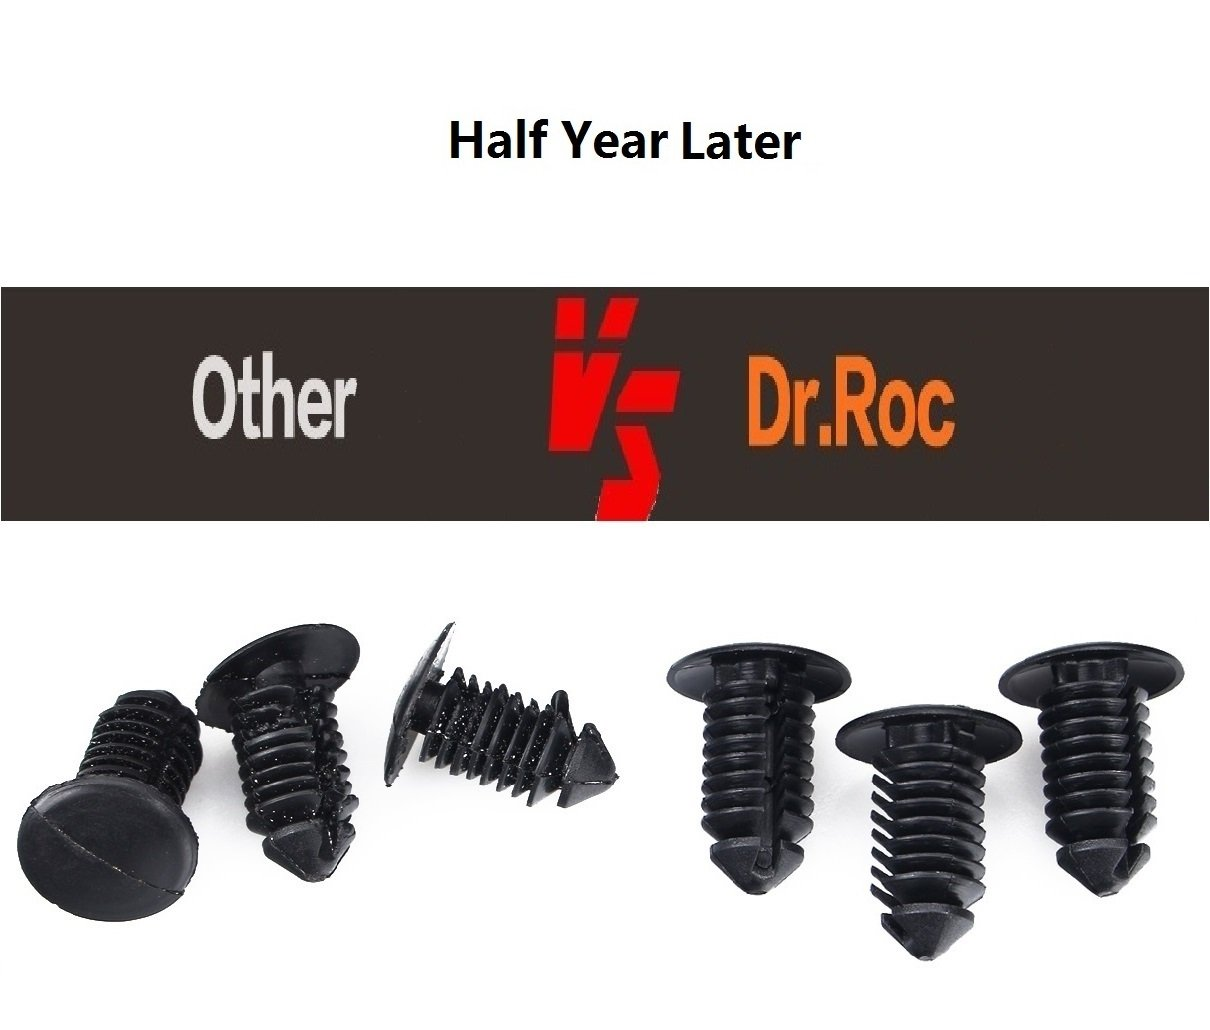 Dr.Roc Replacement for Push Type Retainer Fasteners Rivets Clips w//Fastener Remover Subaru 7mm 8mm 10mm-50PCS-Very Durable POM Polymer SubaruPT001 90914-0007 90913-0067 90914-0051 OEM Upgrade 3 Sizes